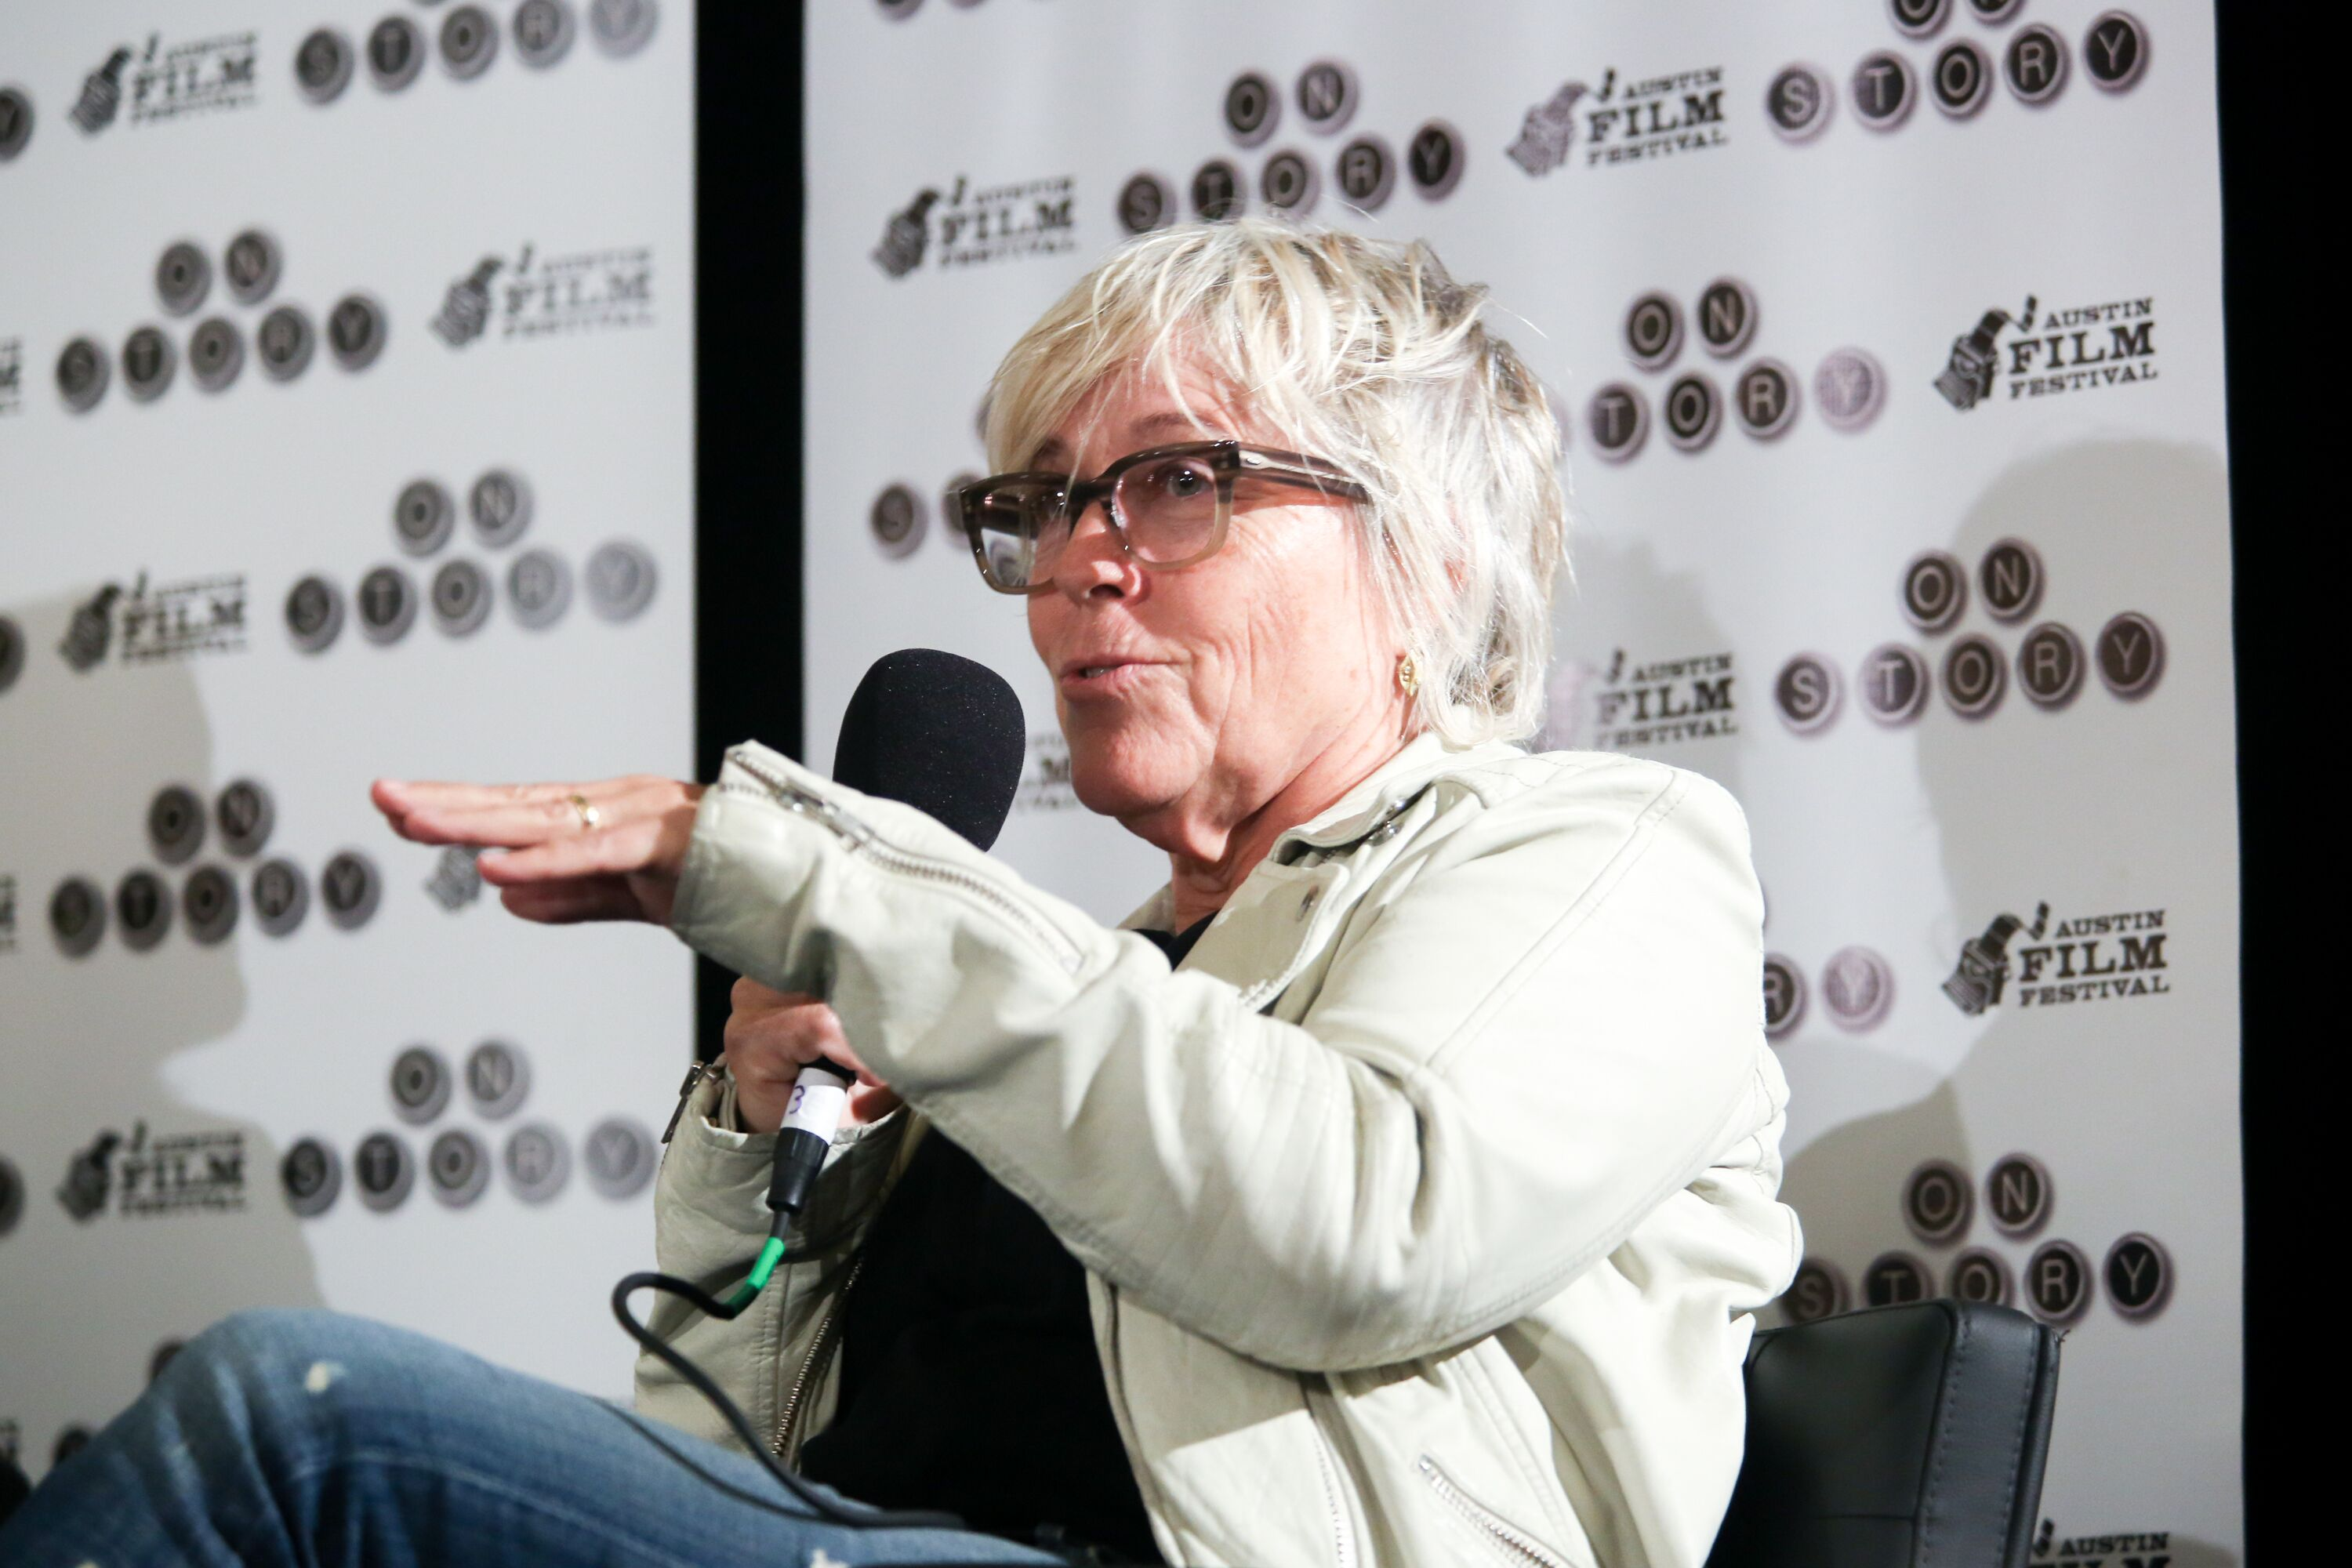 A woman with black glasses holds a microphone on stage